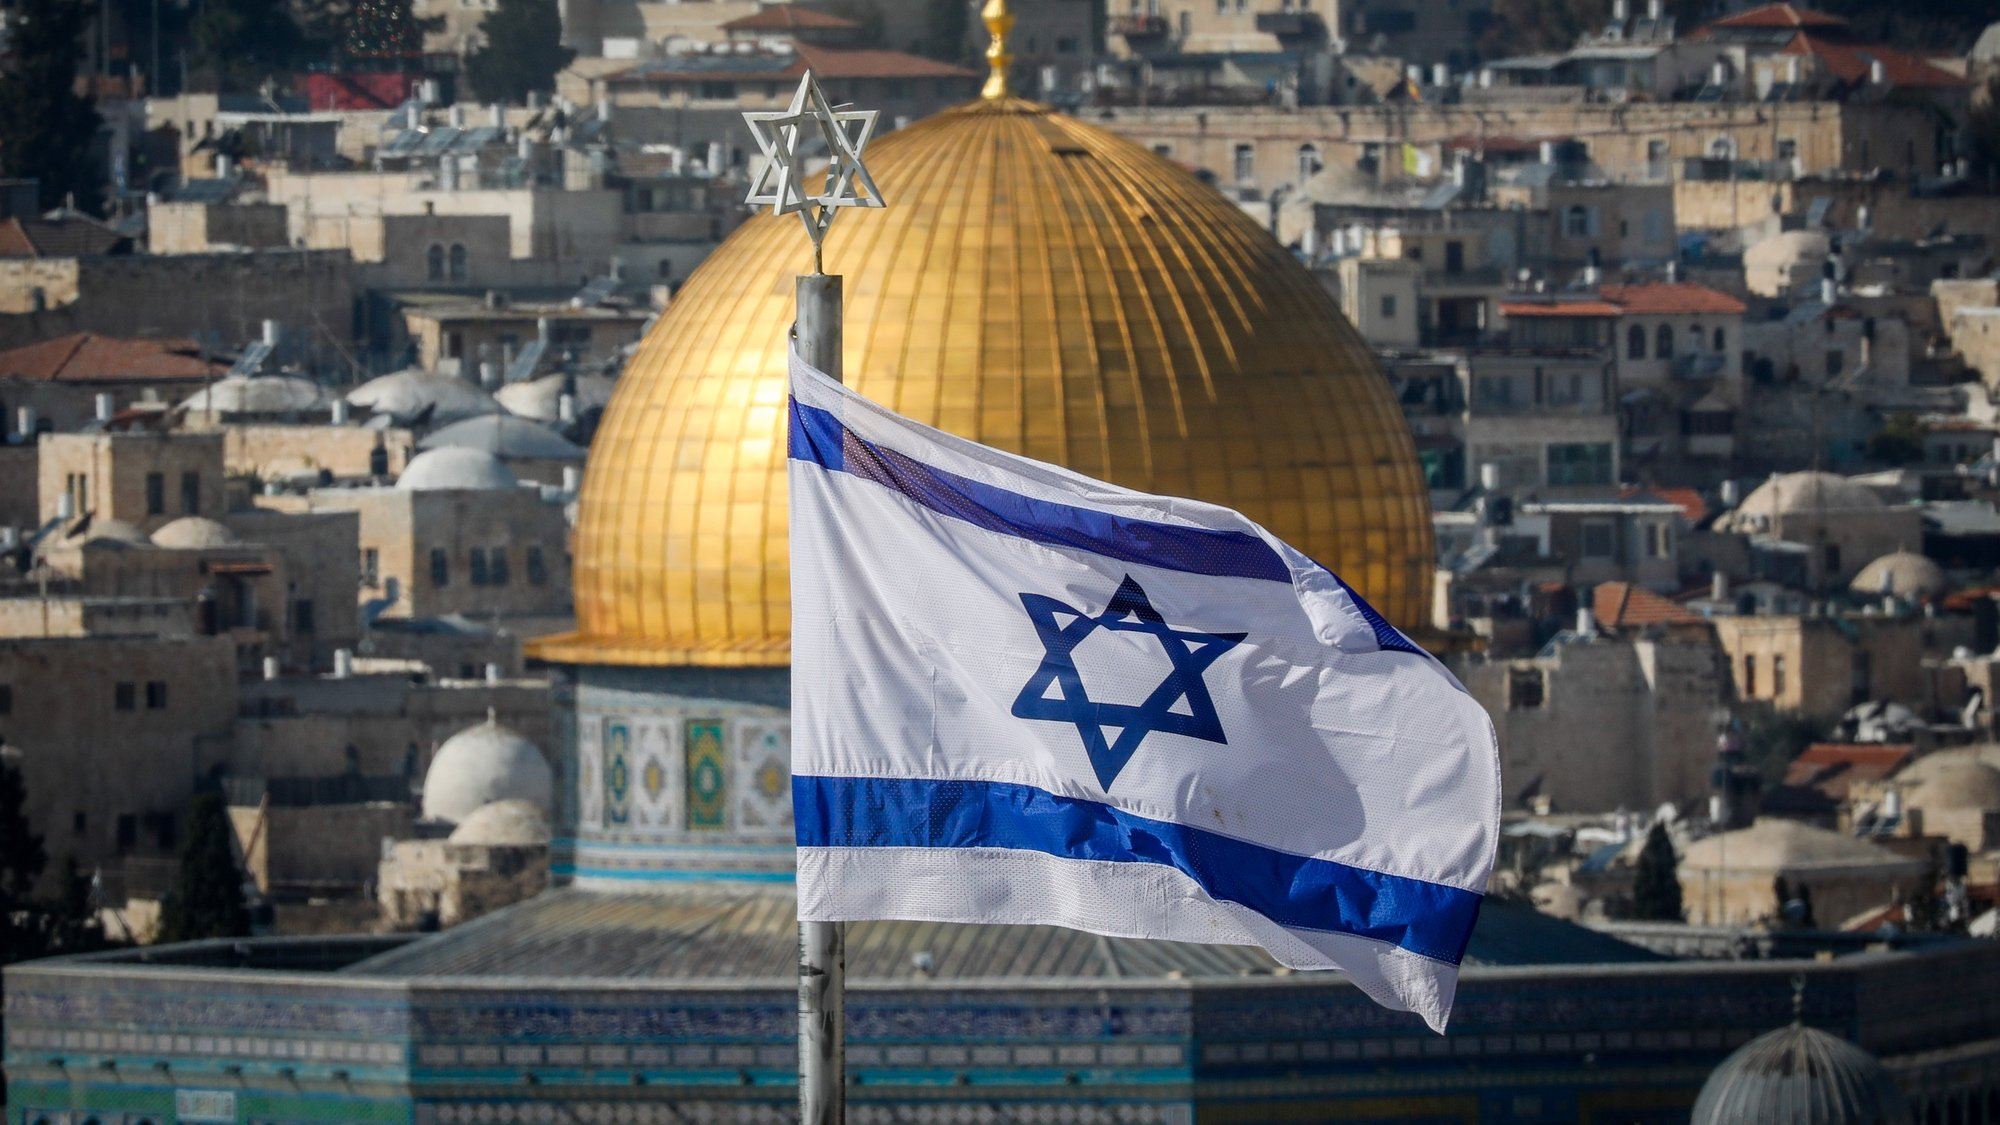 Who really controls Jerusalem and the Temple Mount?